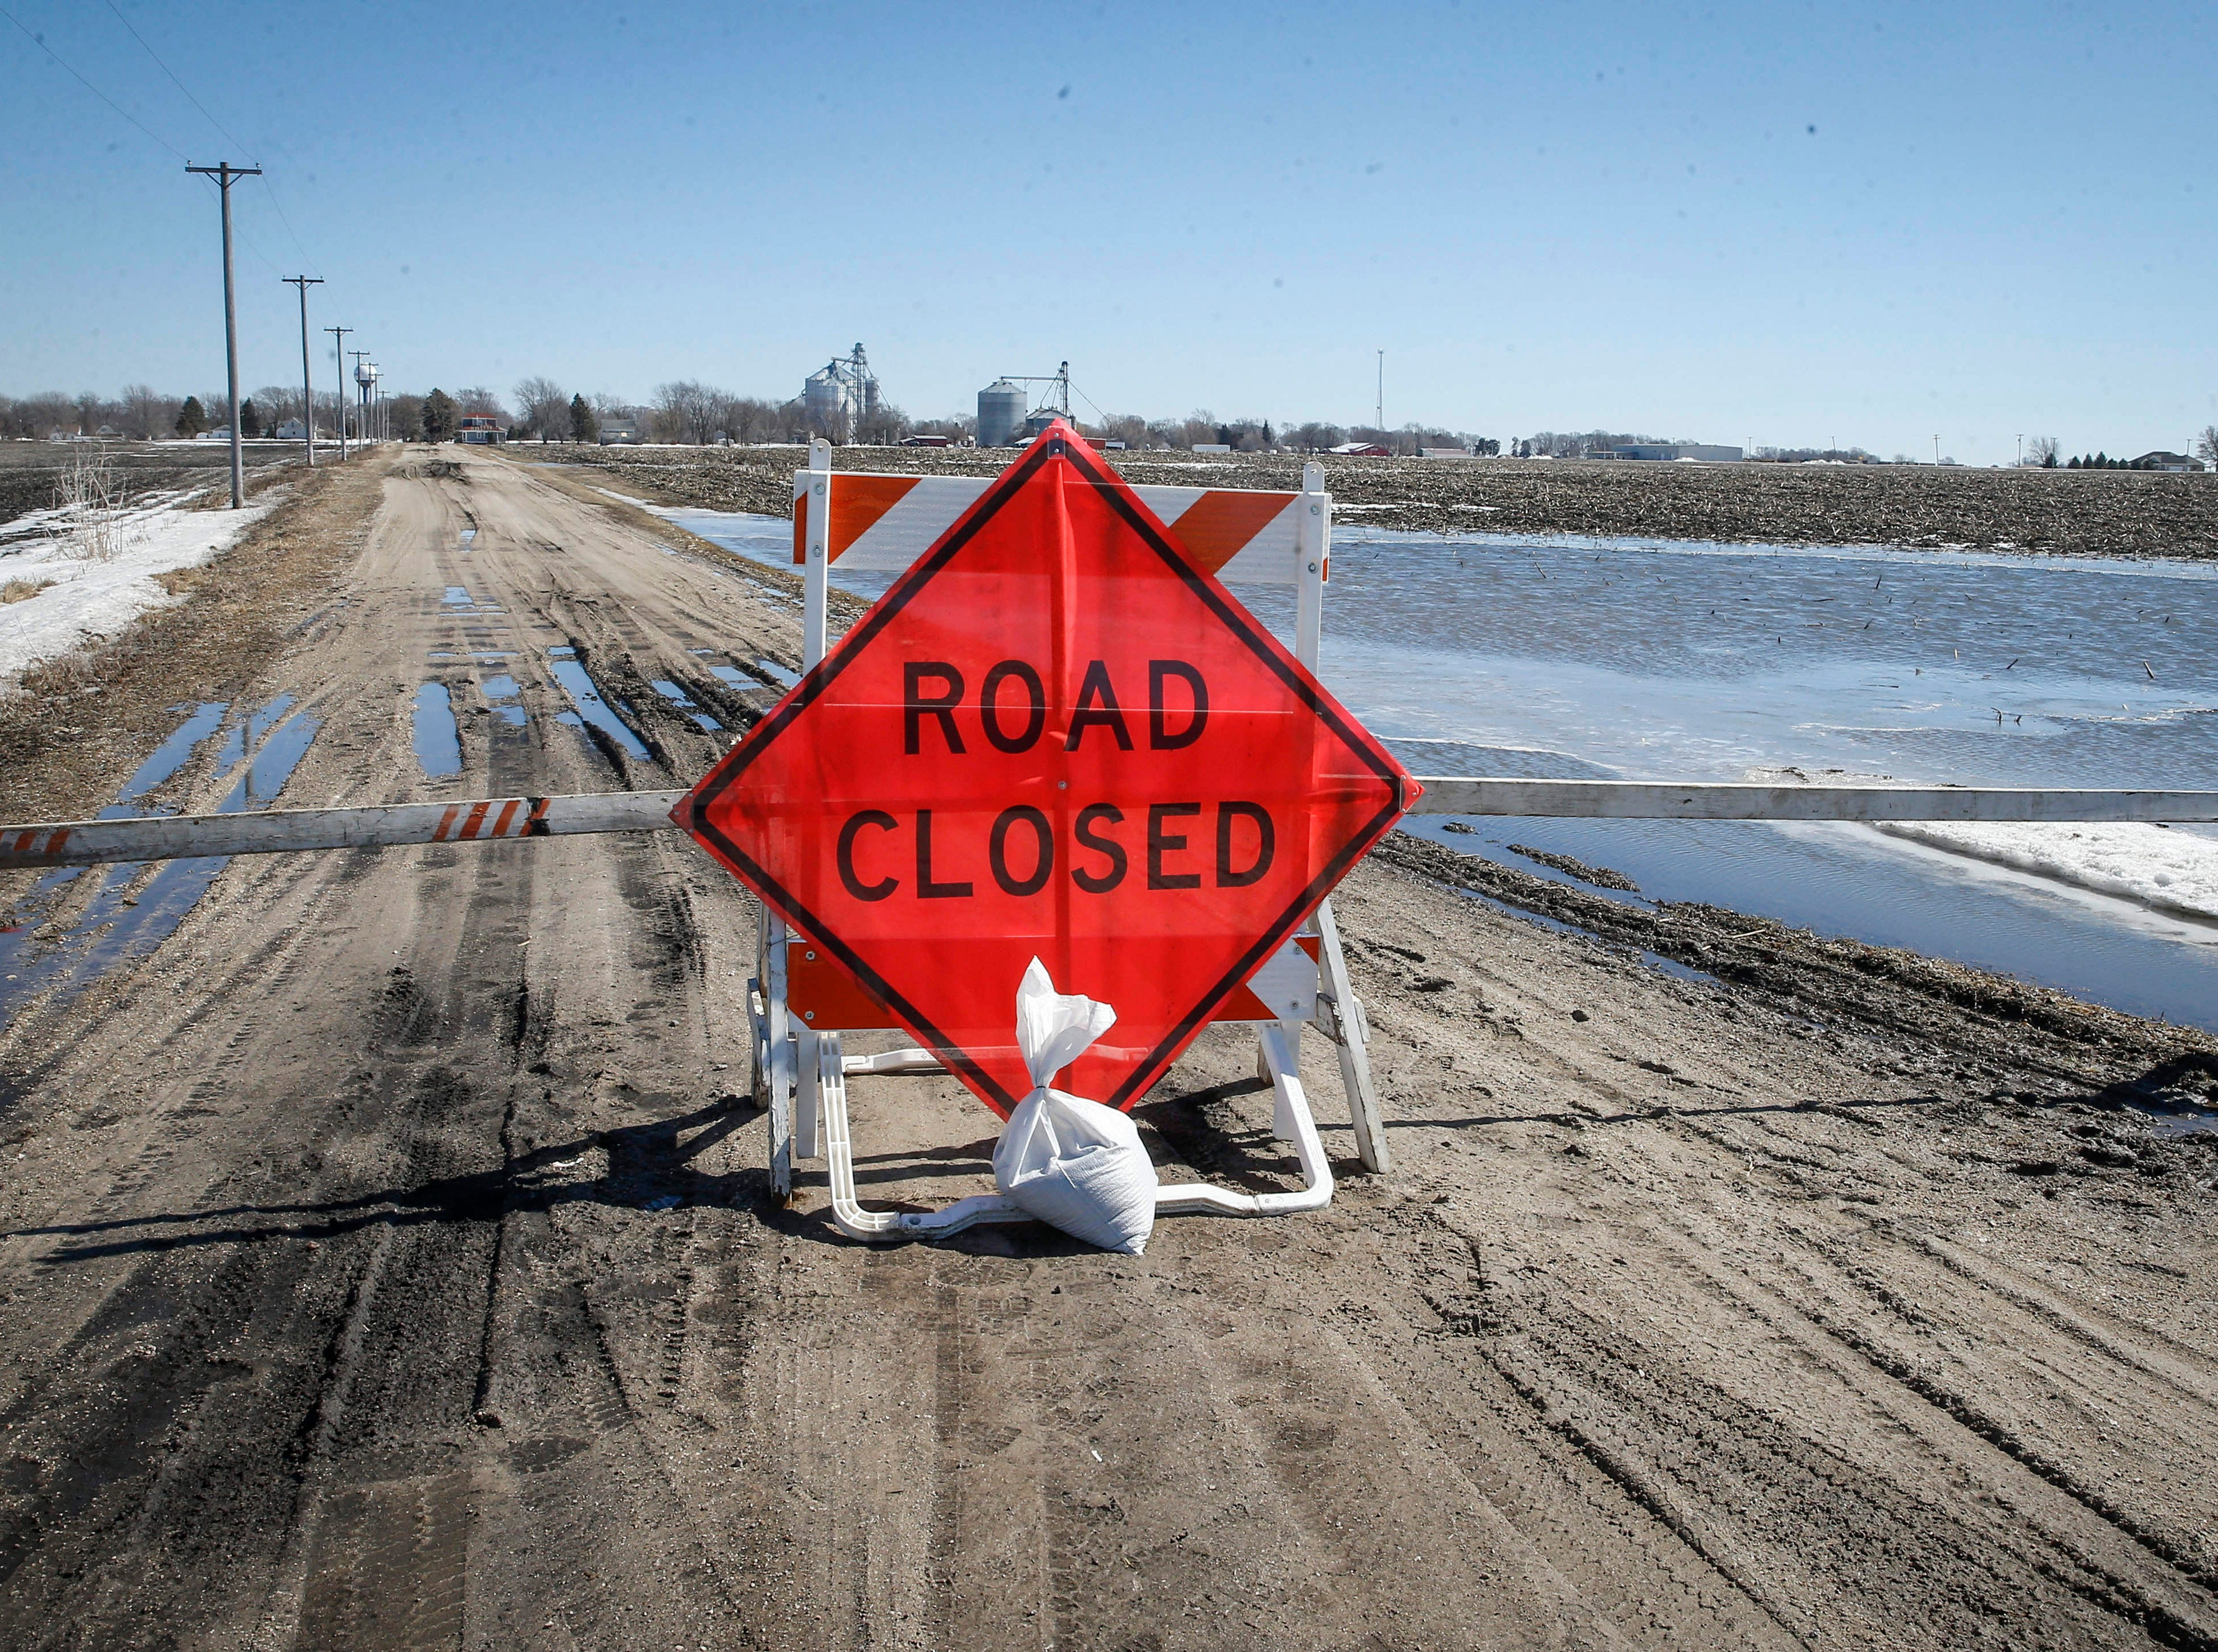 Water from melting snow has caused counties in Iowa to close some secondary roads, like this road in Stratford in Hamilton County, on Friday, March 15, 2019.